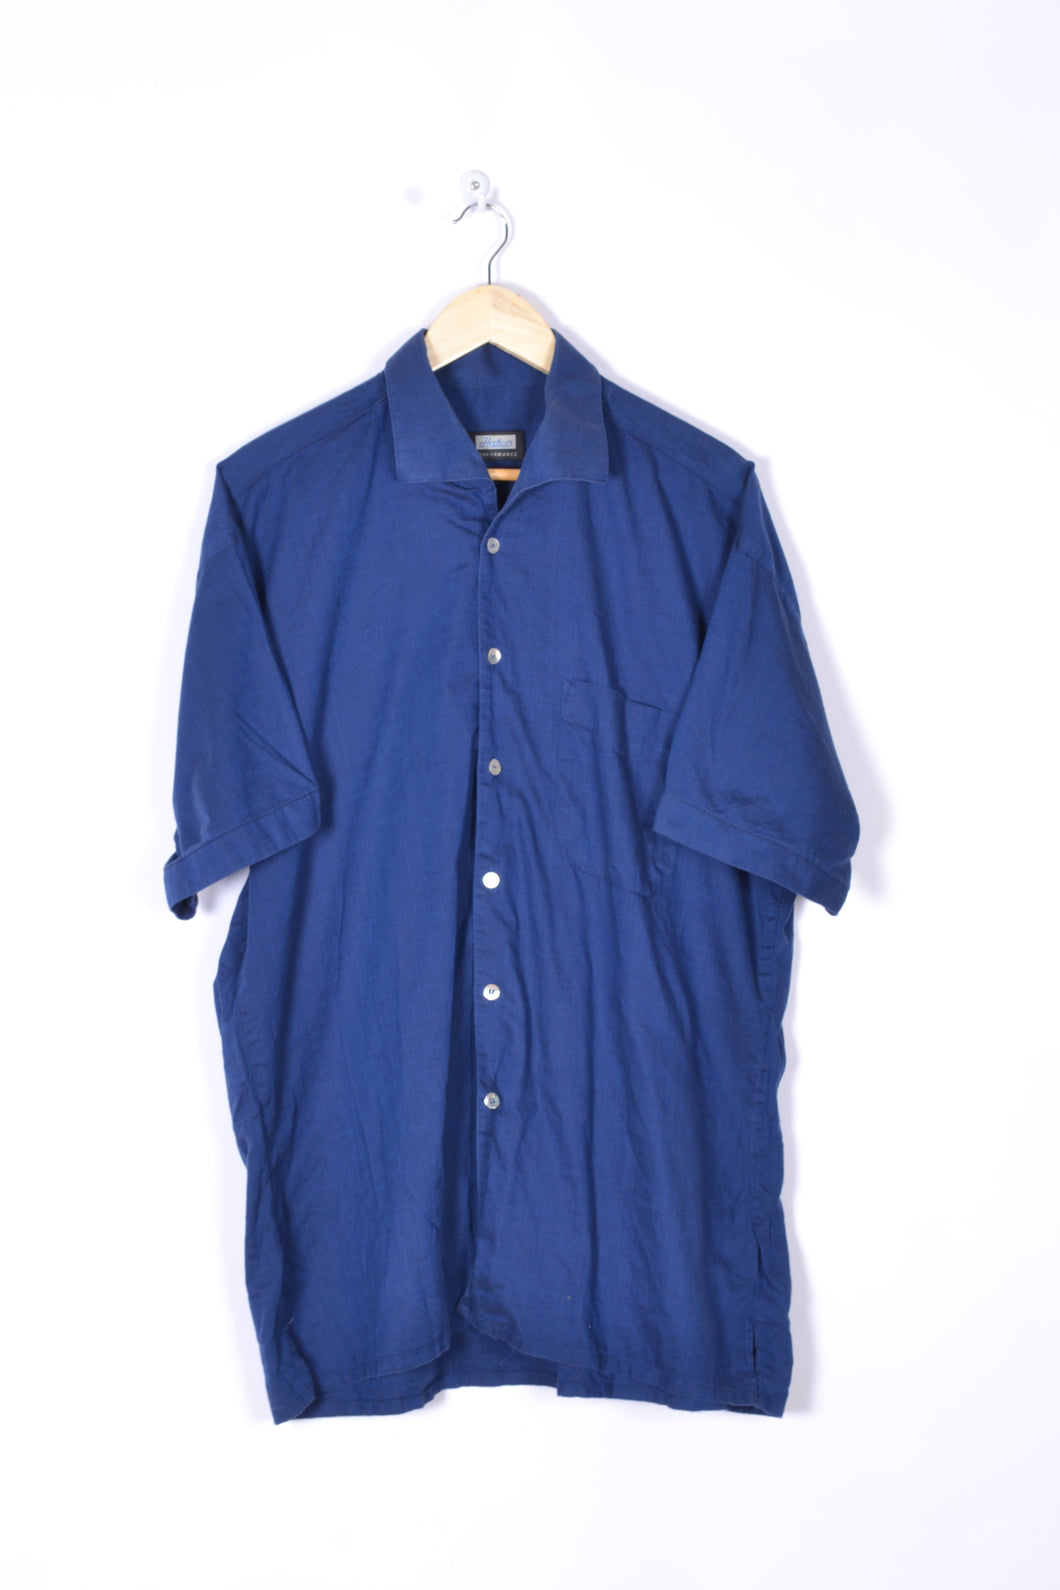 Blue Short sleeves Men's Shirt Vintage 90s XL